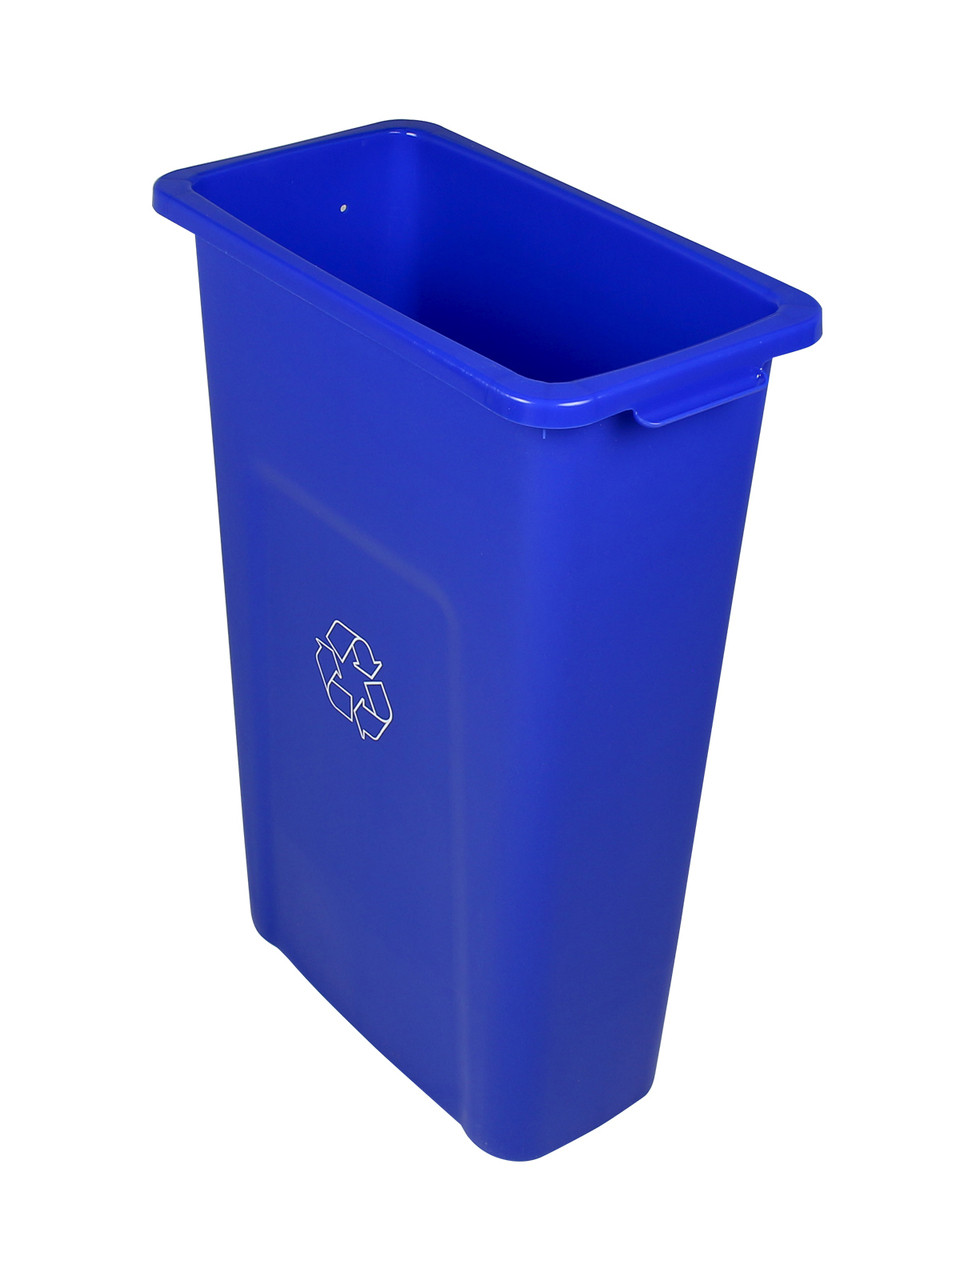 23 Gallon Skinny Plastic Home & Office Recycling Bin Blue